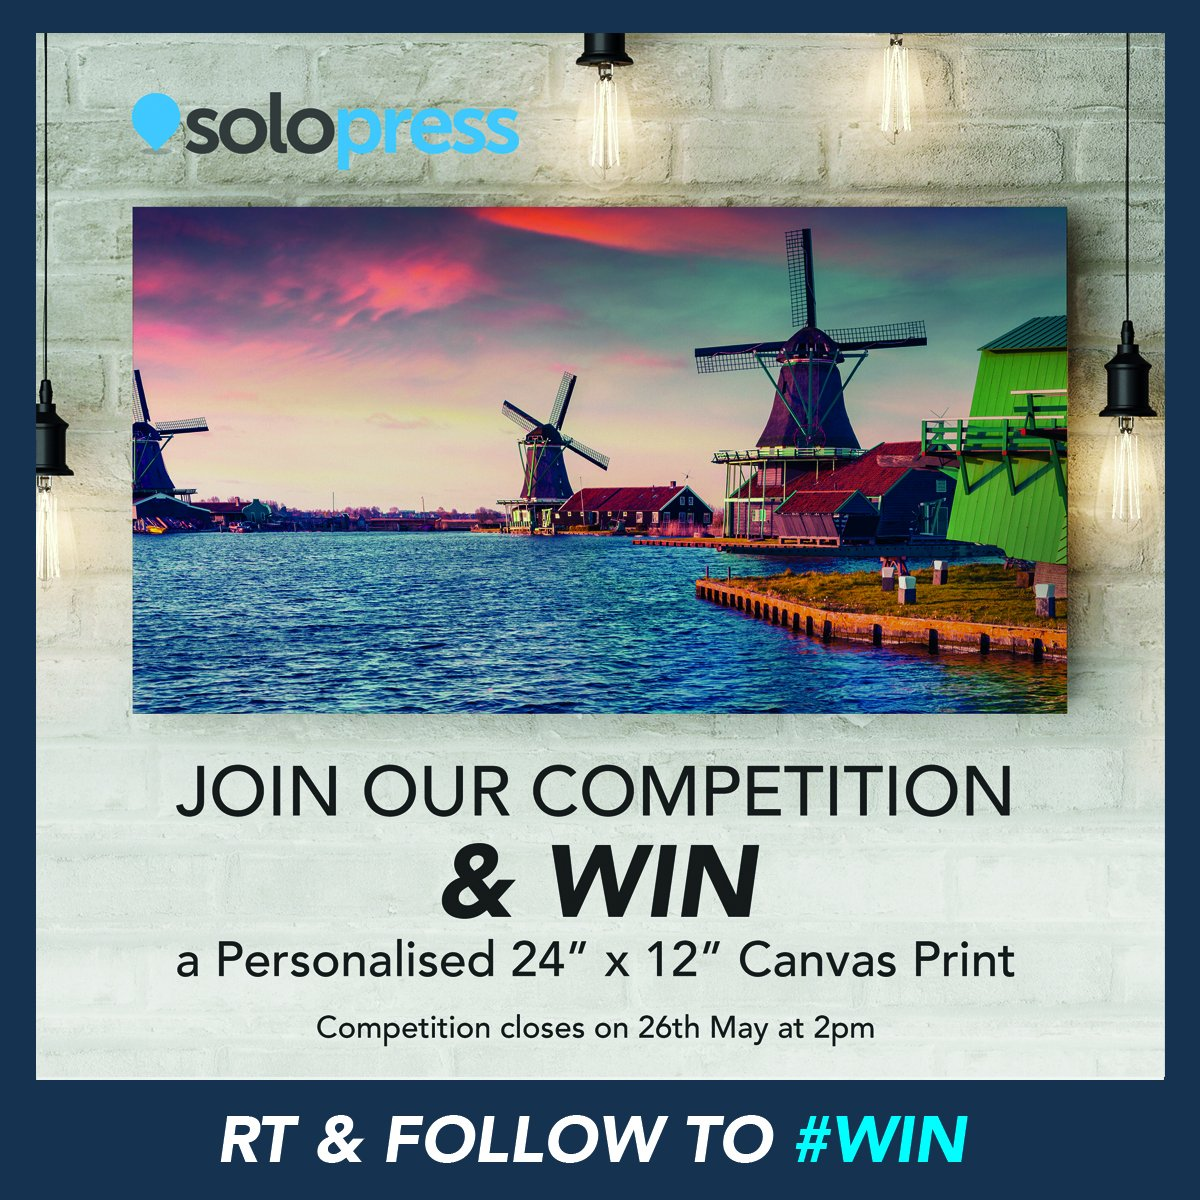 #Competition time! Your chance to #WIN your own personalised #Canvas  Simply RT &amp; FOLLOW @Solopress to WIN  #giveaway #giveaways #contest<br>http://pic.twitter.com/ckNv6CFW15